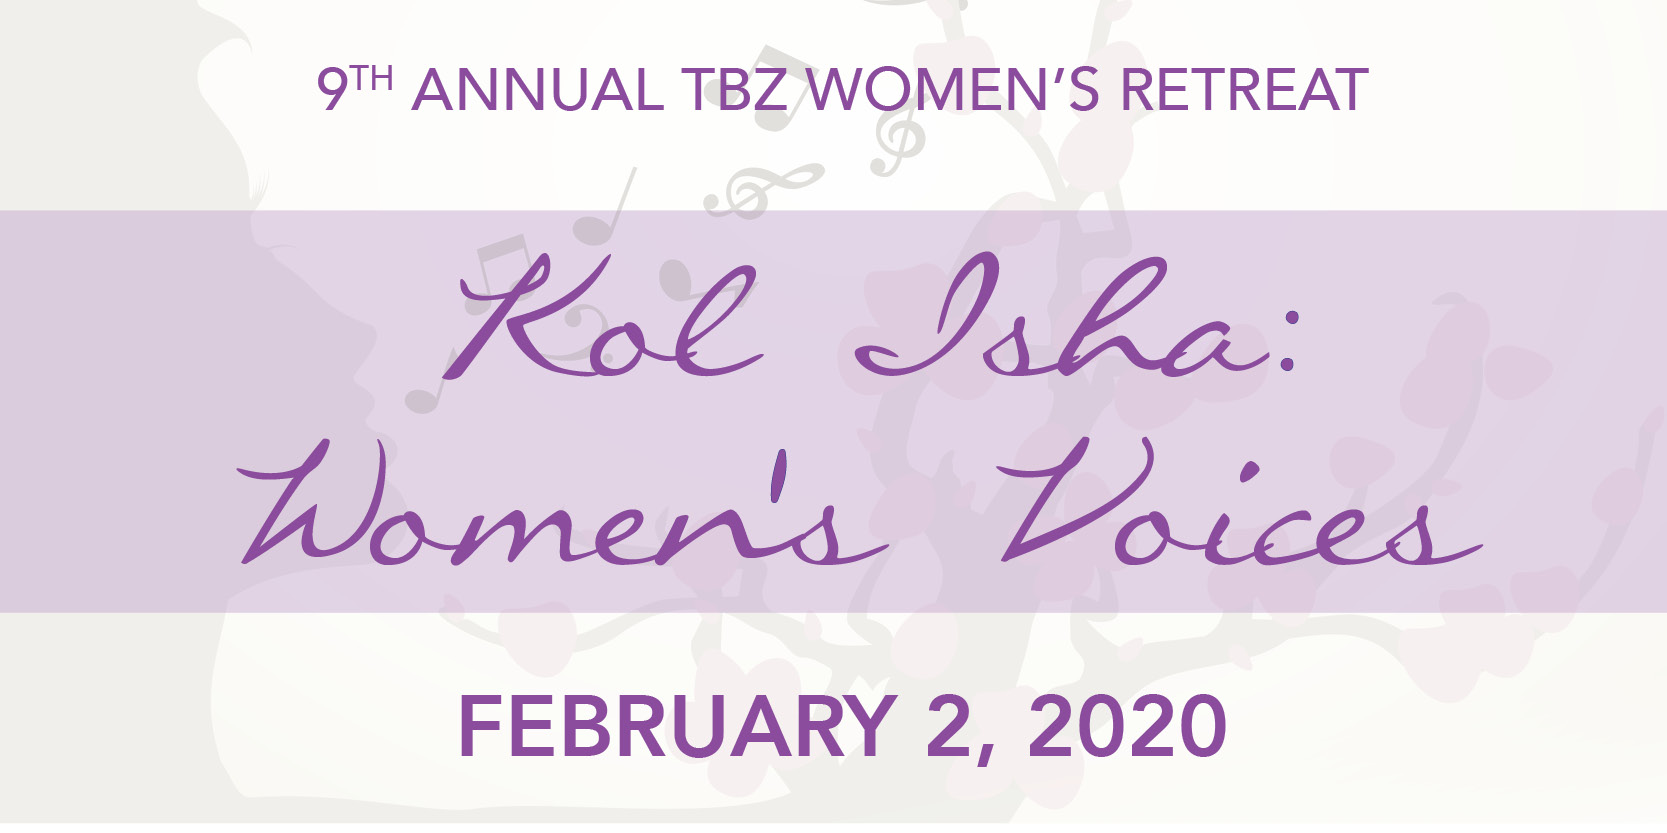 "<a href=""https://www.tbzbrookline.org/form/womens-retreat-2020""